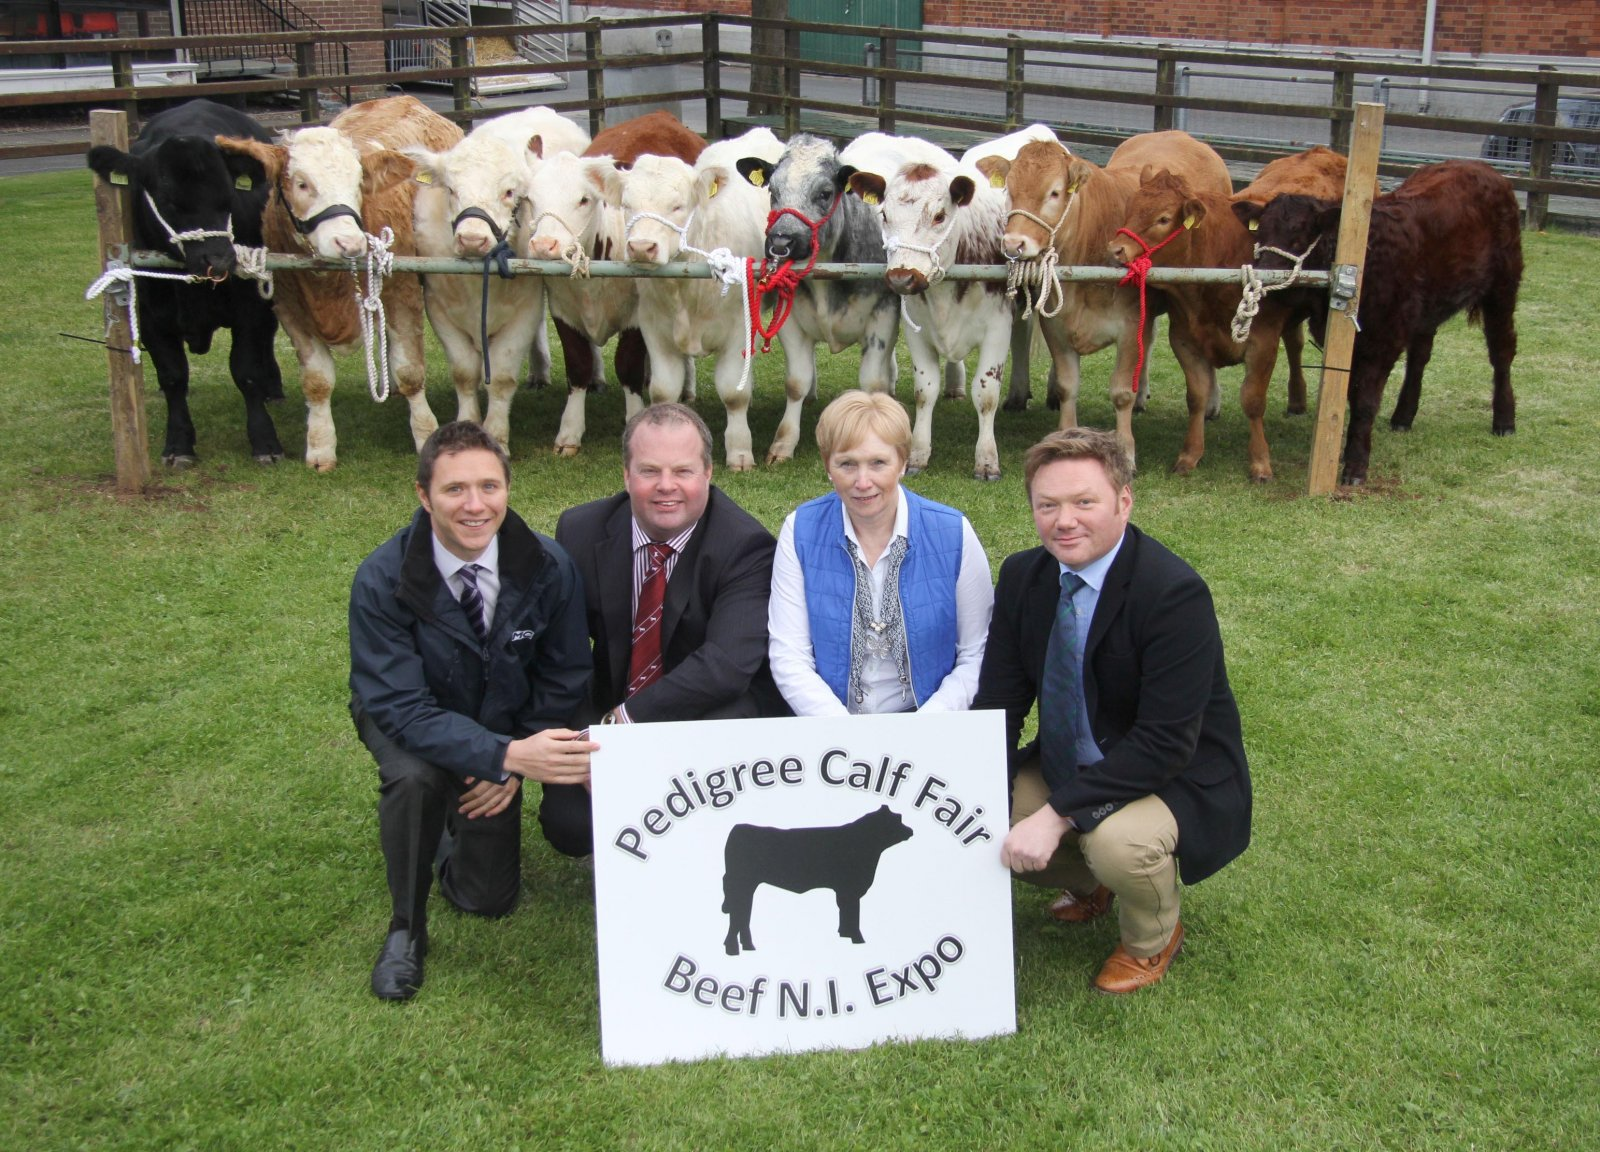 Launching the inaugural Pedigree Calf Fair and Beef NI Expo 2015 at the Balmoral Showgrounds are event chairman David Connolly, and secretary Ann Orr, with industry partners Colin Smith, Livestock and Meat Commission; and Chris Mallon, National Beef Assoc